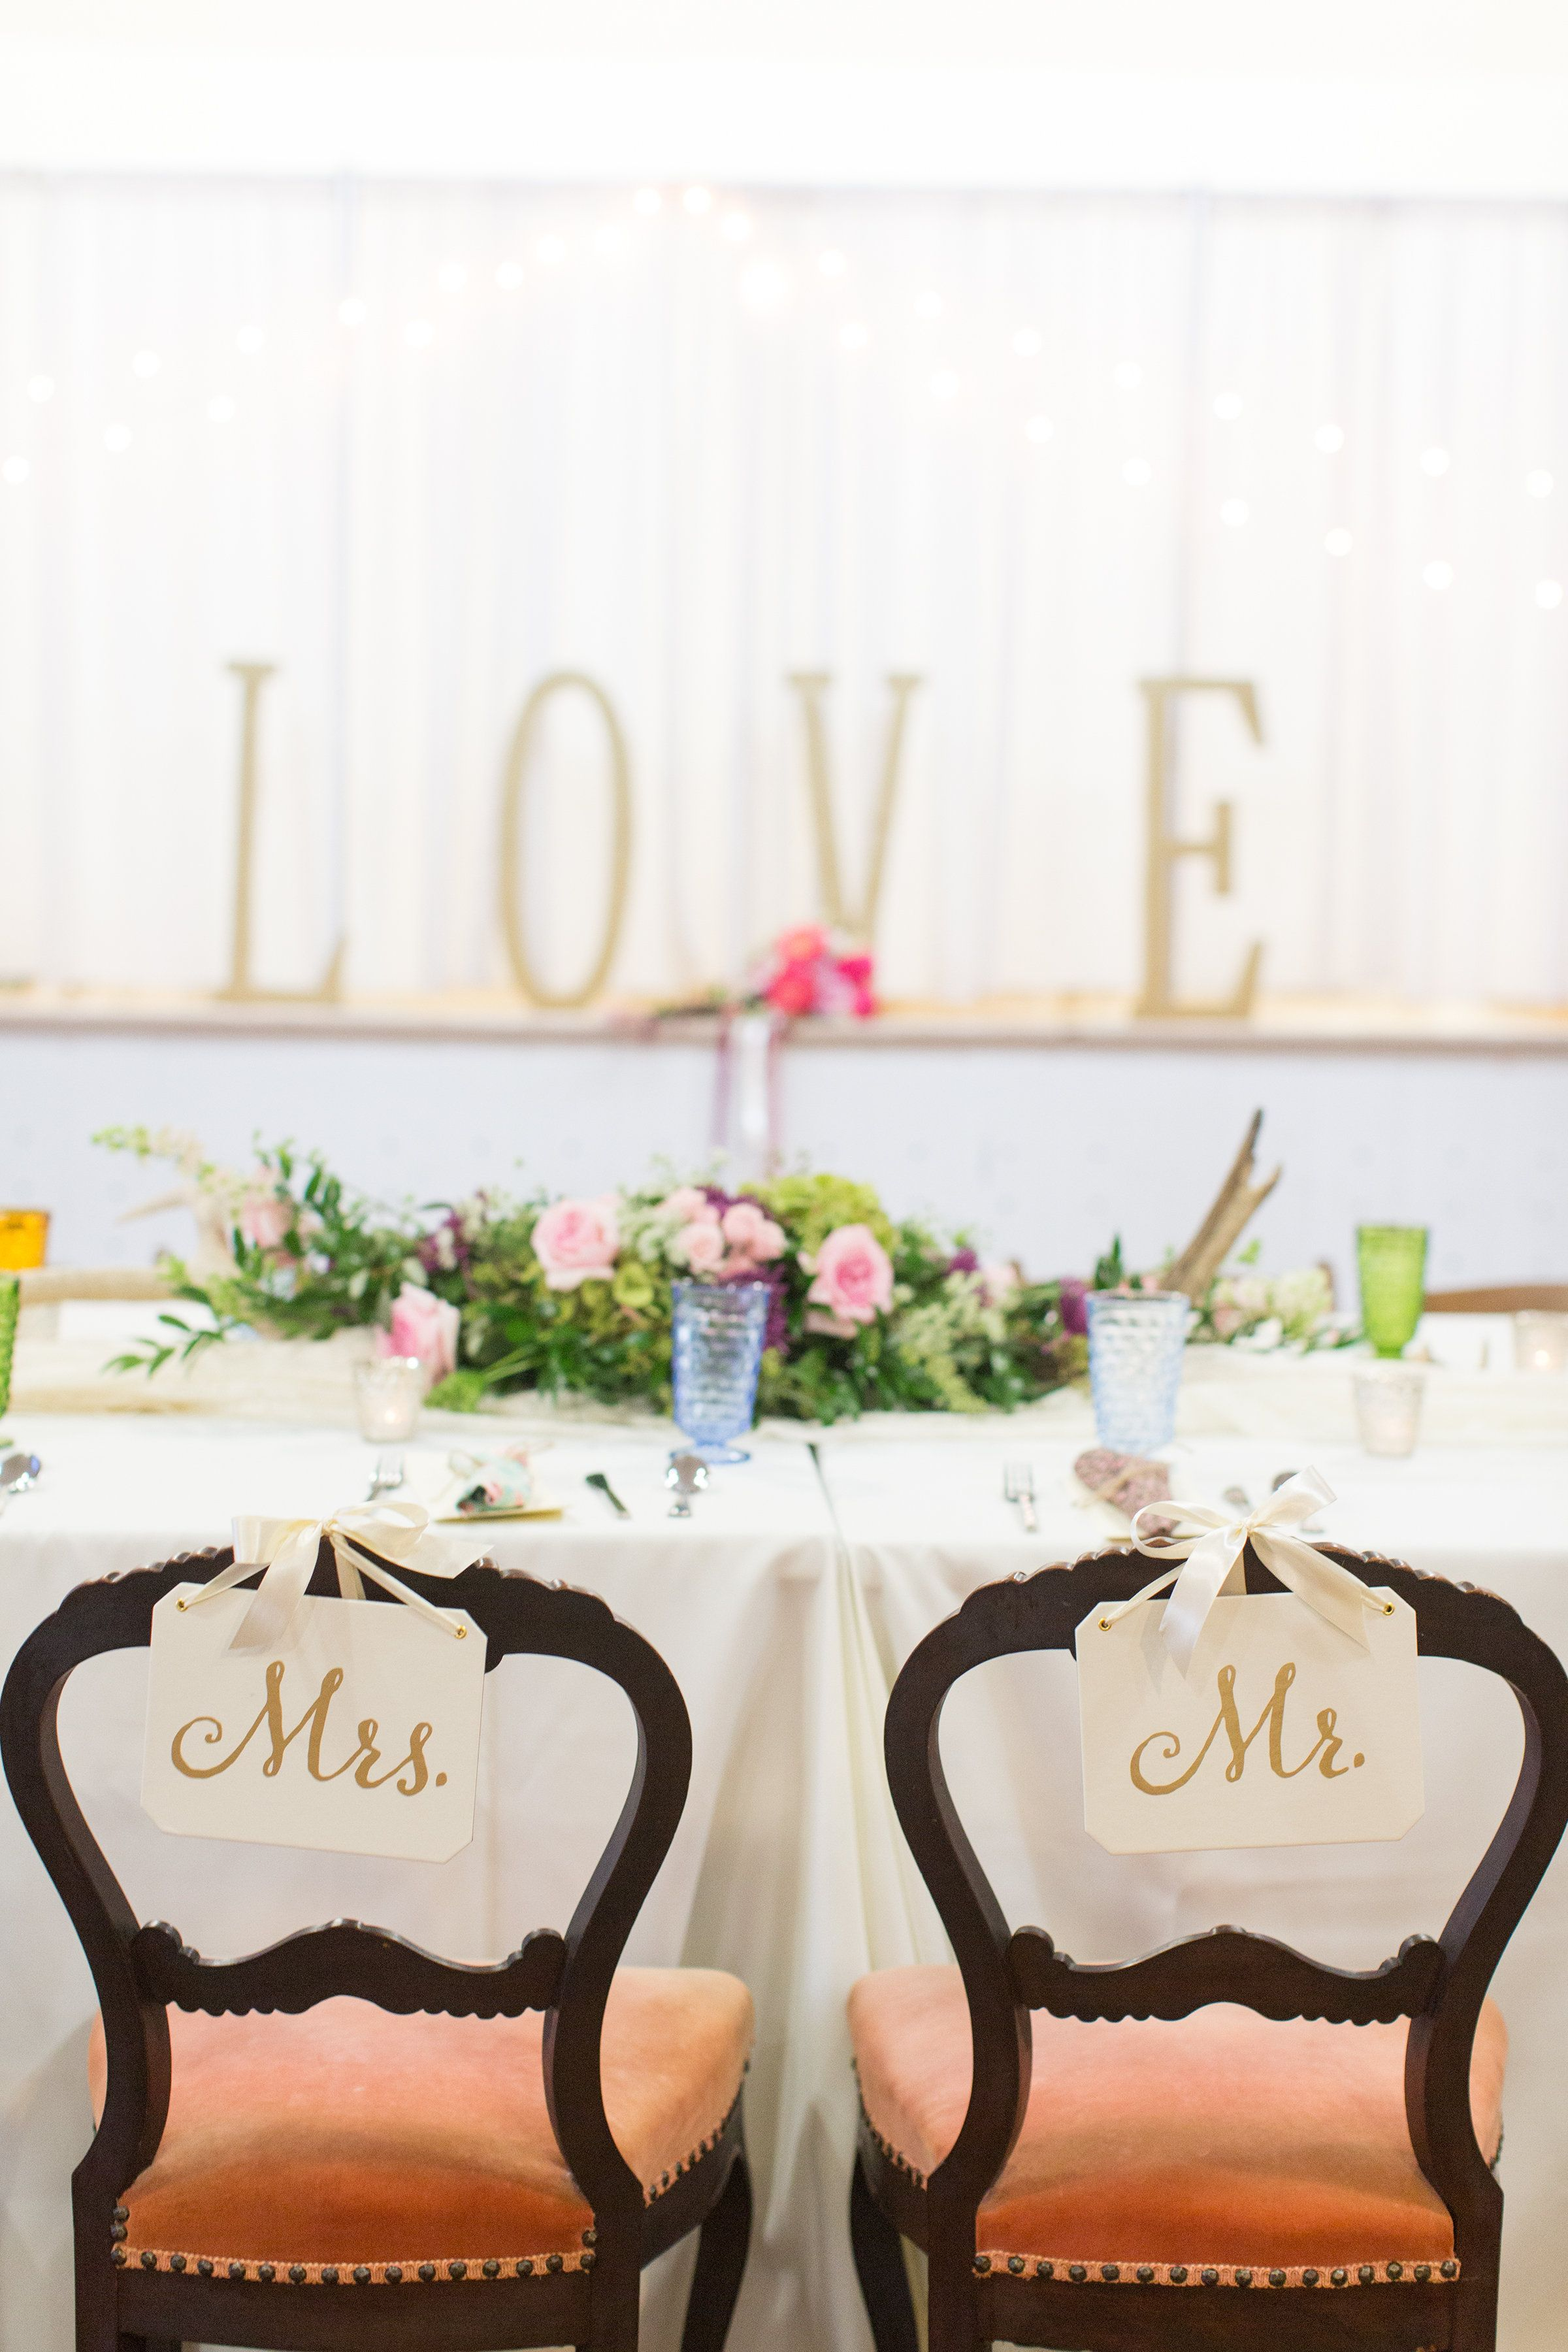 Lovely winfrey point wedding reception dixidoesvintage rentals by lovely winfrey point wedding reception dixidoesvintage rentals by dixie does vintage in dallas tx and photo by michelle rice photography junglespirit Choice Image